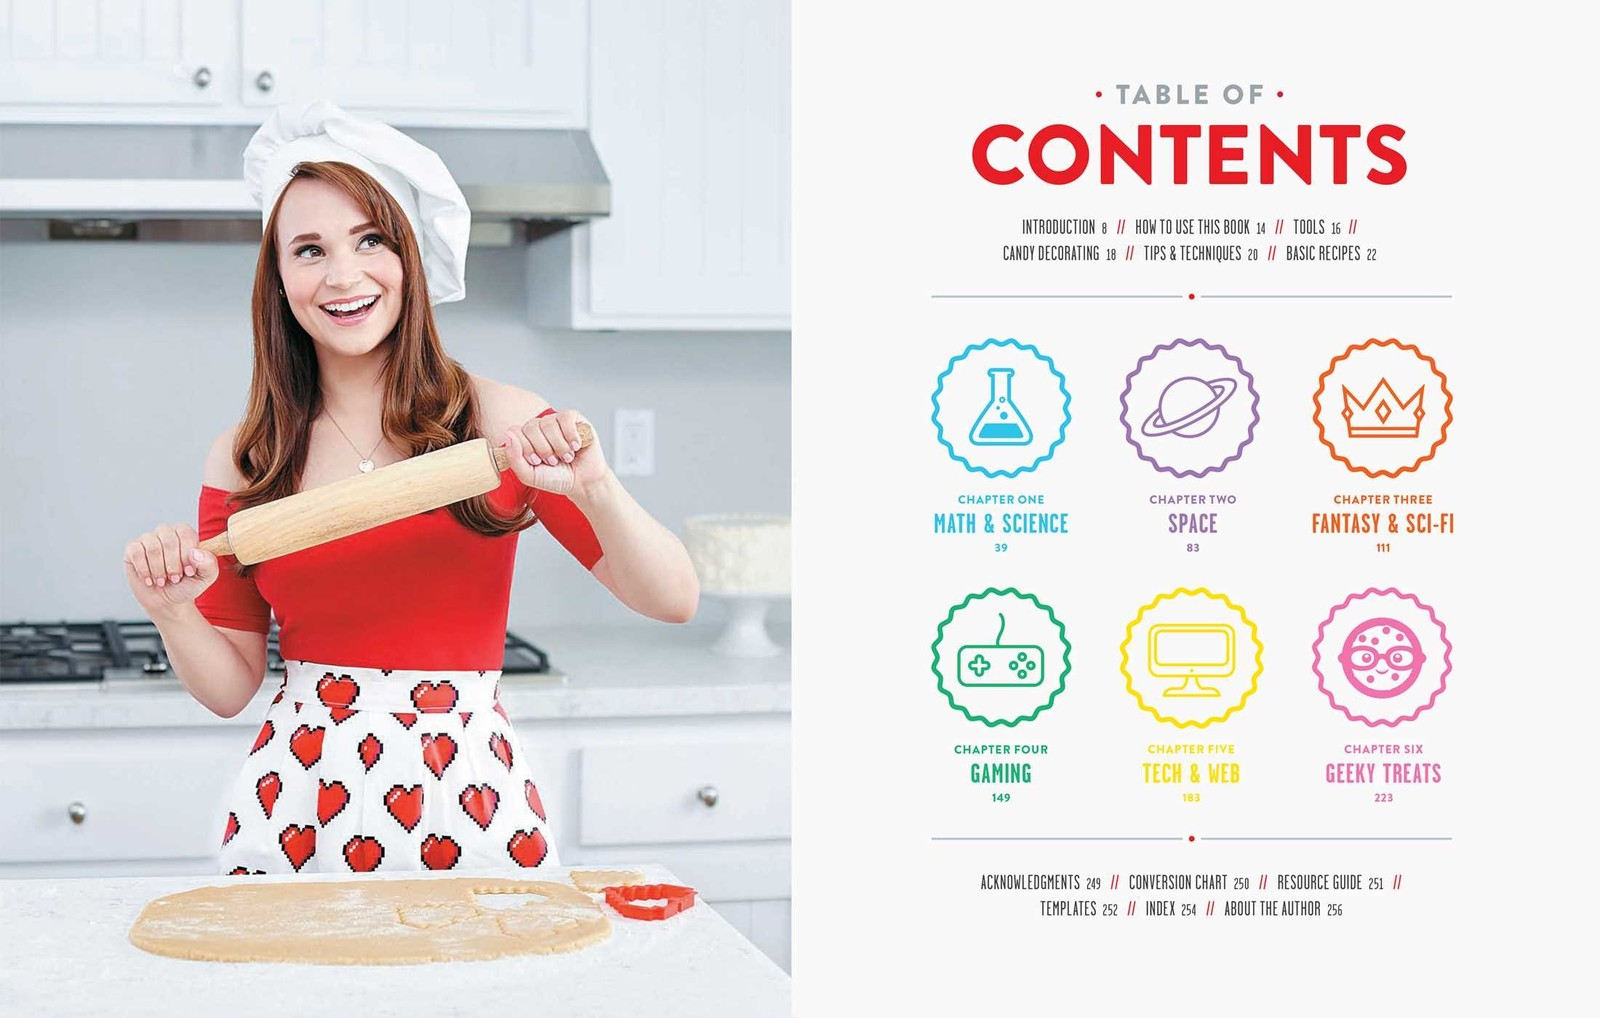 The Nerdy Nummies Cookbook image